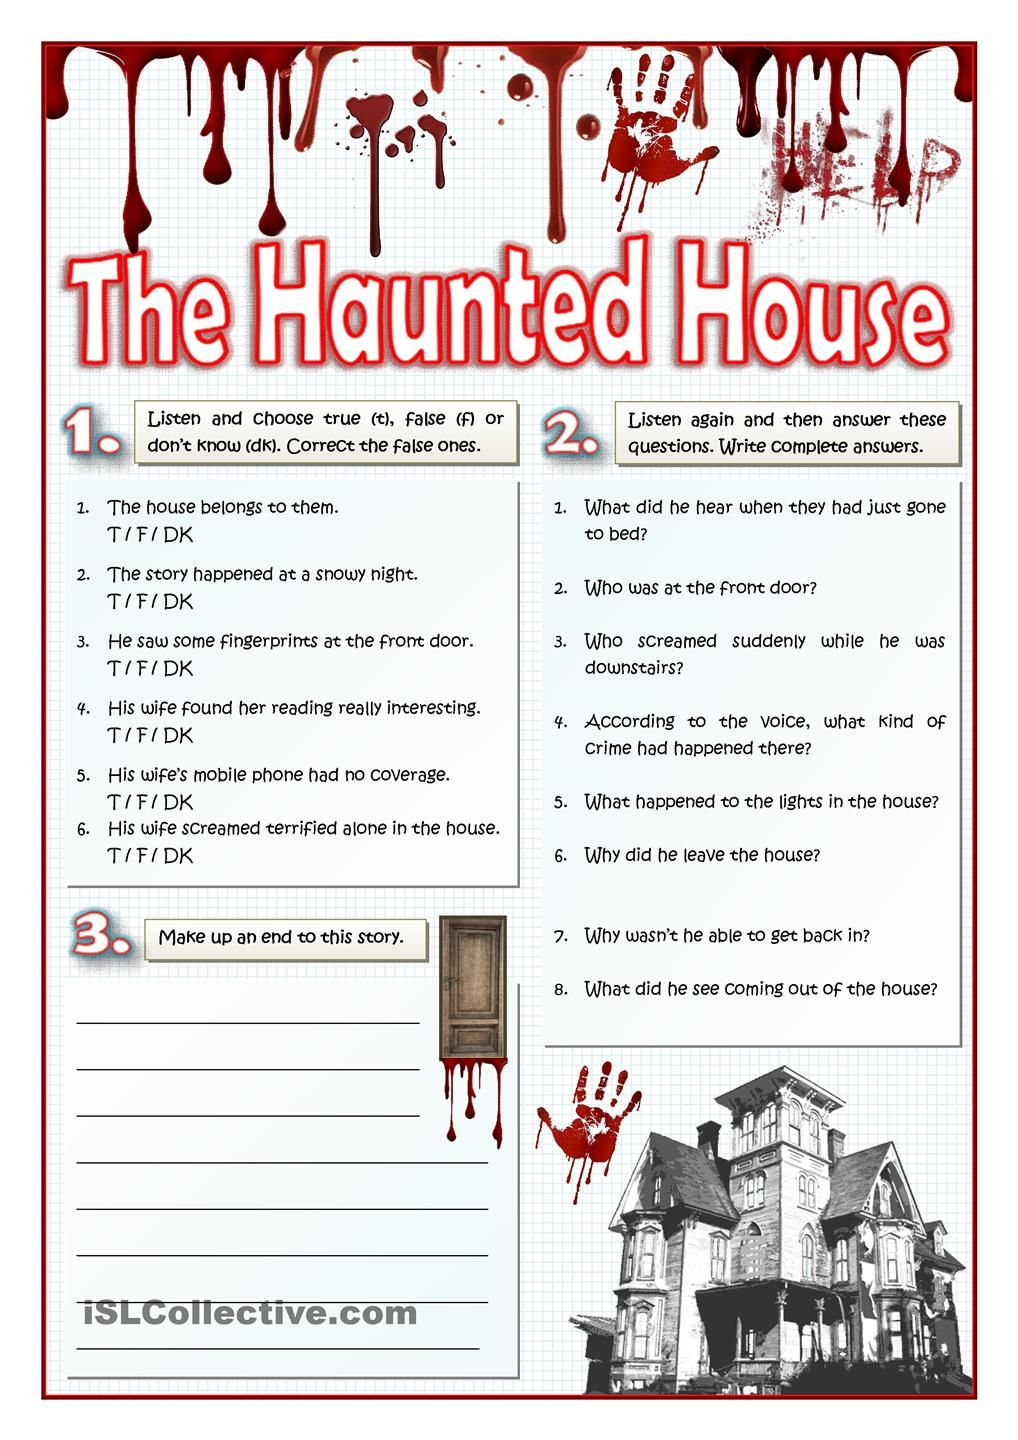 THE HAUNTED HOUSE - LISTENING AND WRITING | ESL worksheets of the ...